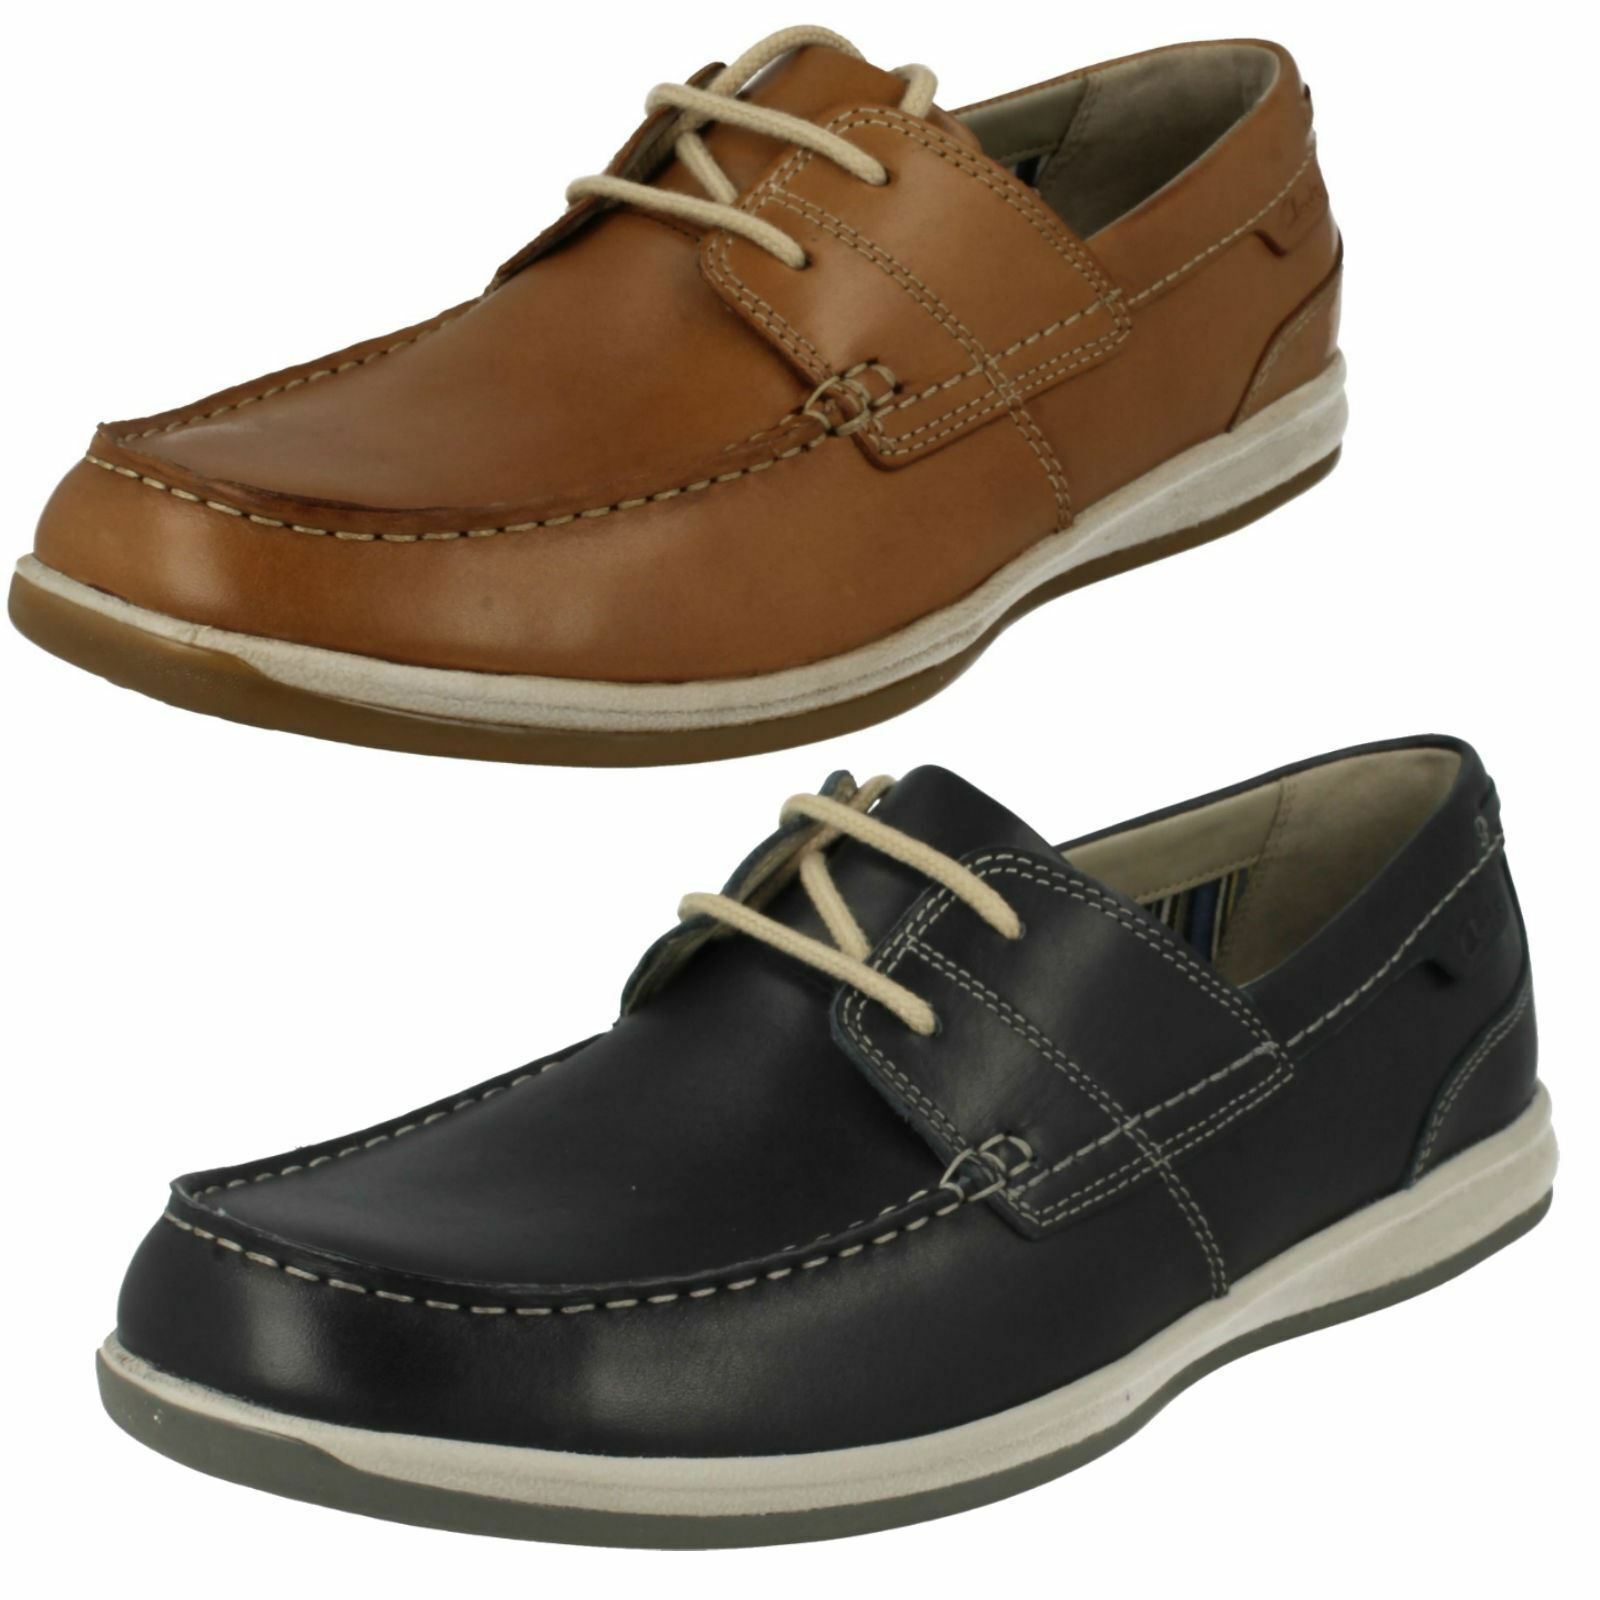 Mens Navy / Tan Leather Clarks Lace Up Boat Shoes Fallston Style